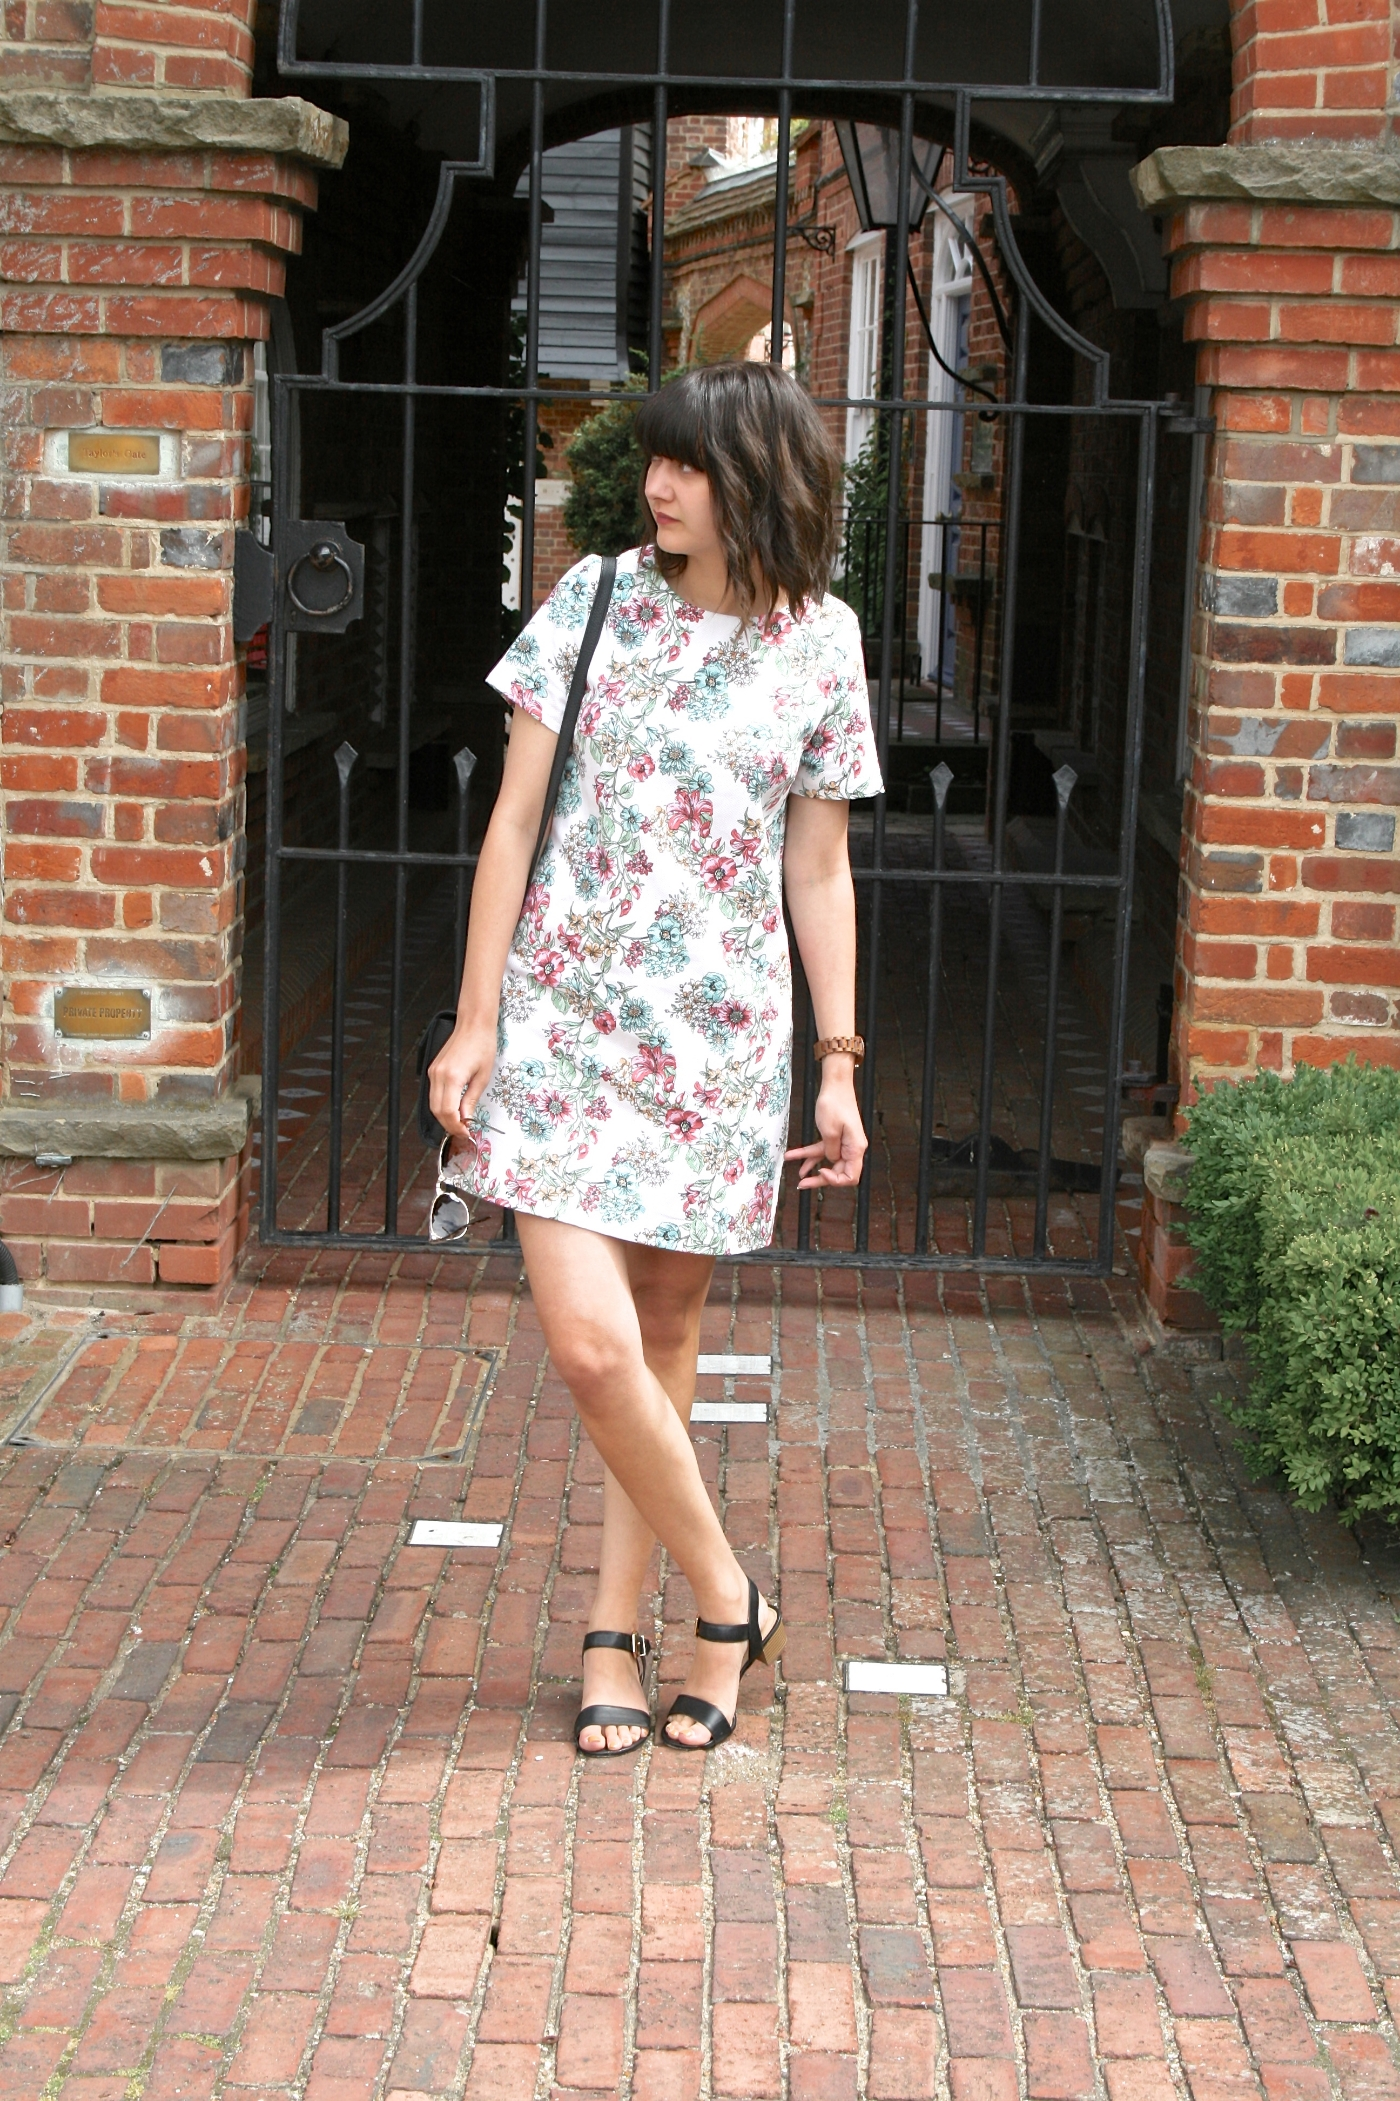 strappy sandals and summer florals